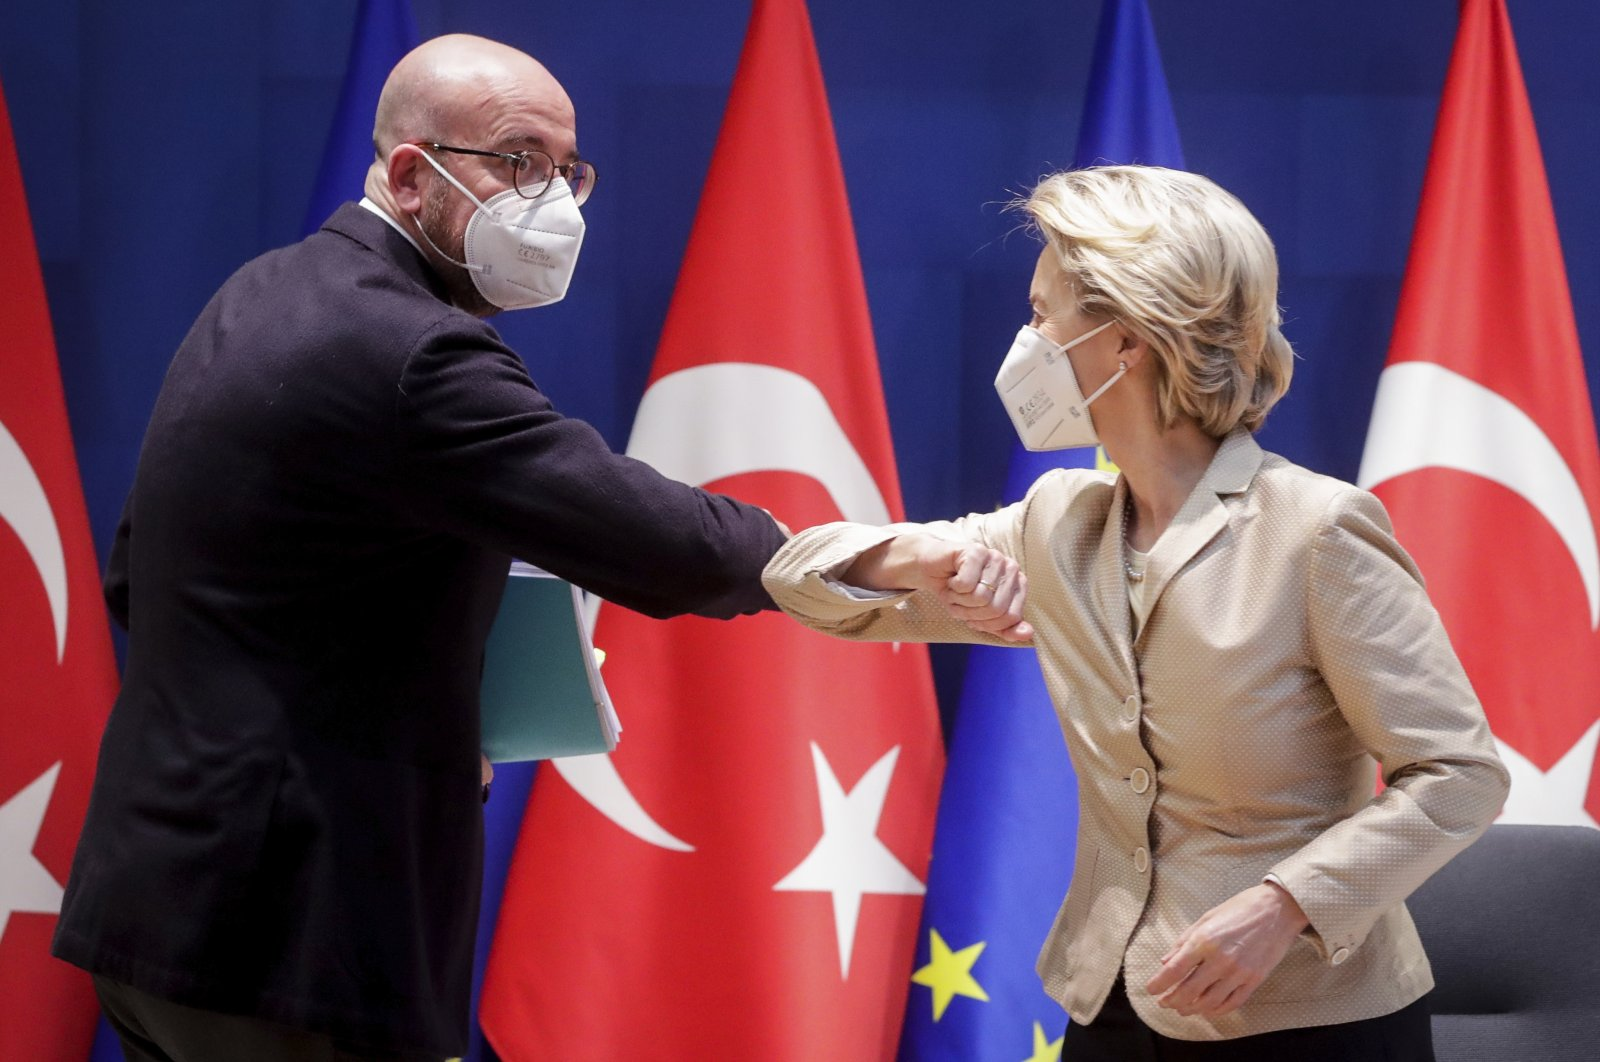 European Council President Charles Michel (L) greets European Commission President Ursula von der Leyen with an elbow bump prior to participating in a videoconference meeting with President Recep Tayyip Erdoğan (not pictured) at the European Council building, Brussels, Belgium, March 19, 2021. (AP Photo)